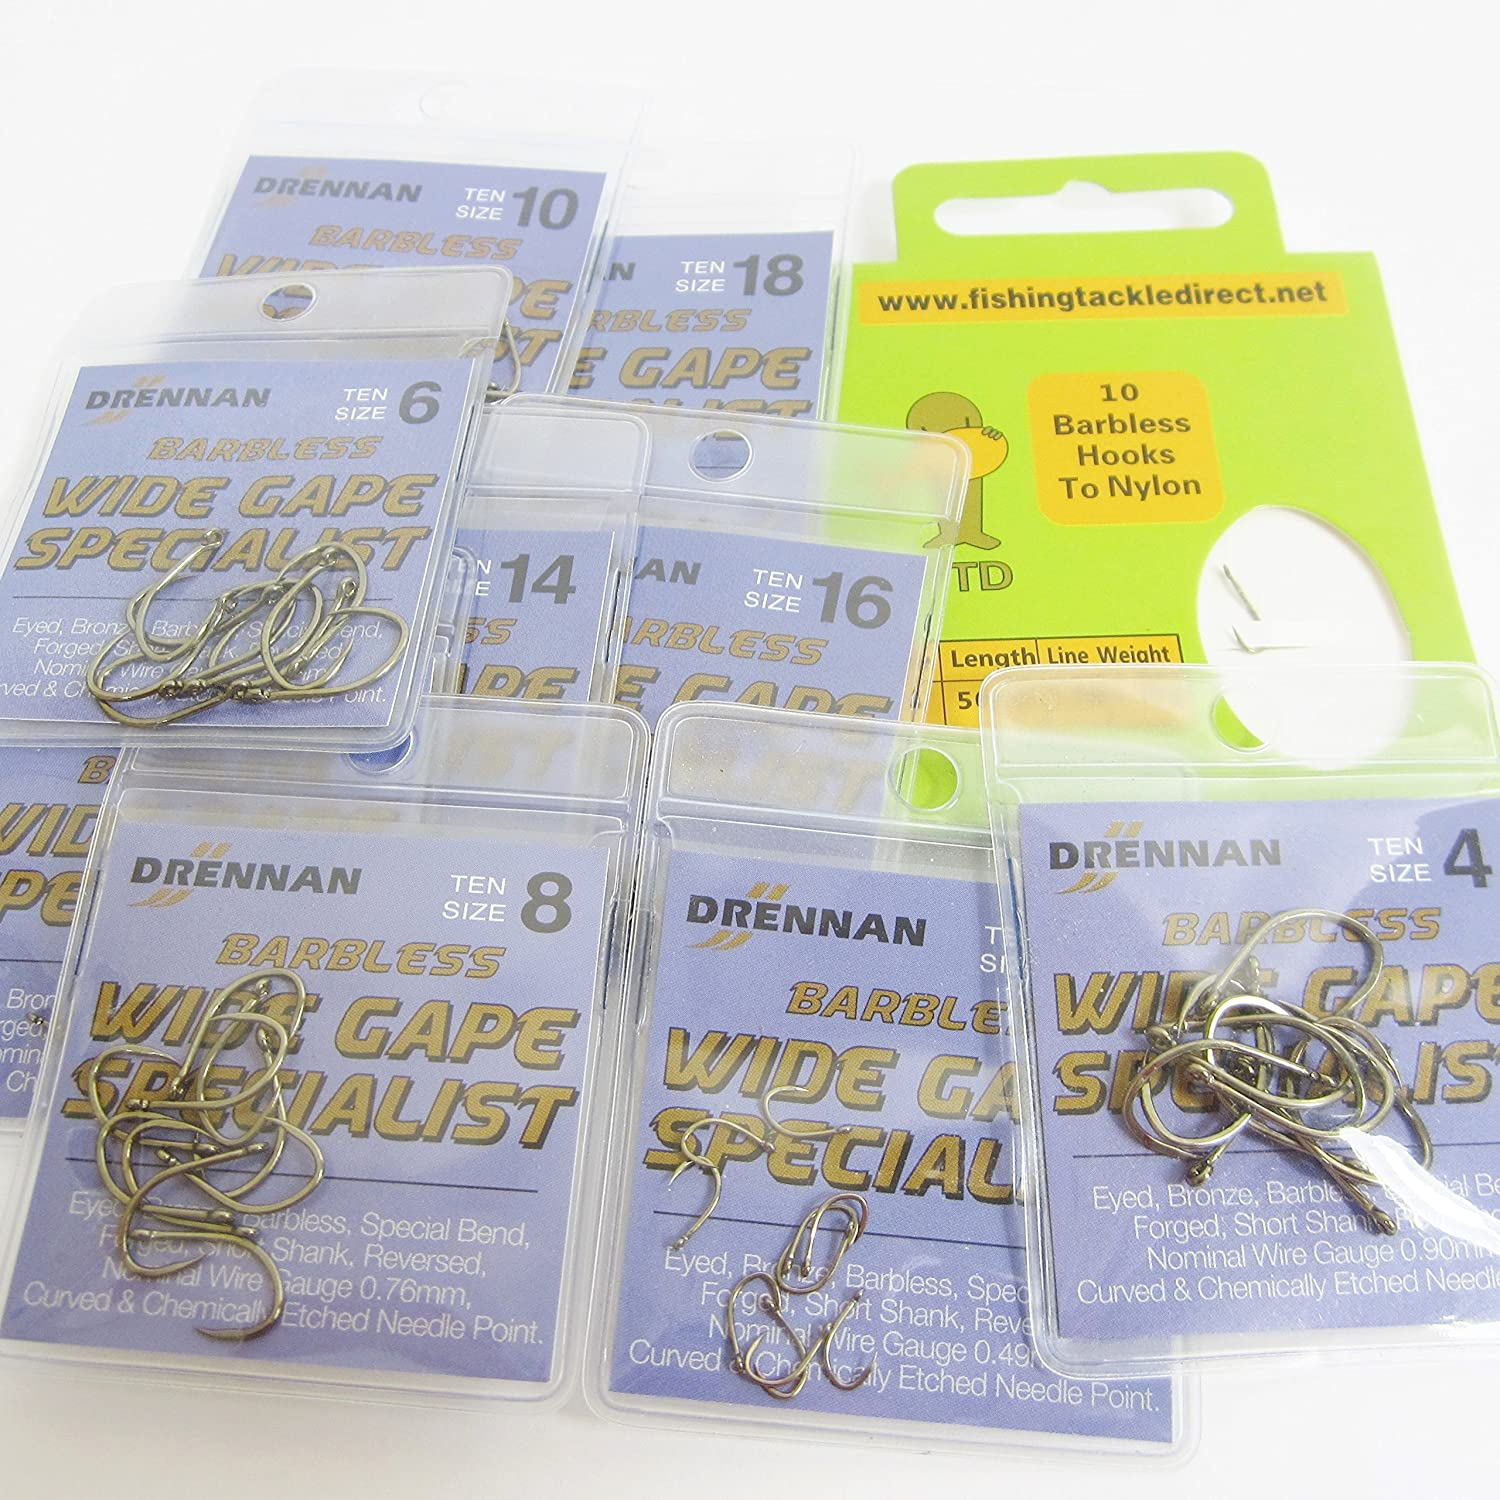 FTD Comes with 10 FTD Barbless Hooks to Nylon EYED Single Size /& Combination Fishing Hooks Sizes 4 to 18 BARBLESS 3 packs of 10 Min 30 DRENNAN WIDE GAPE SPECIALIST